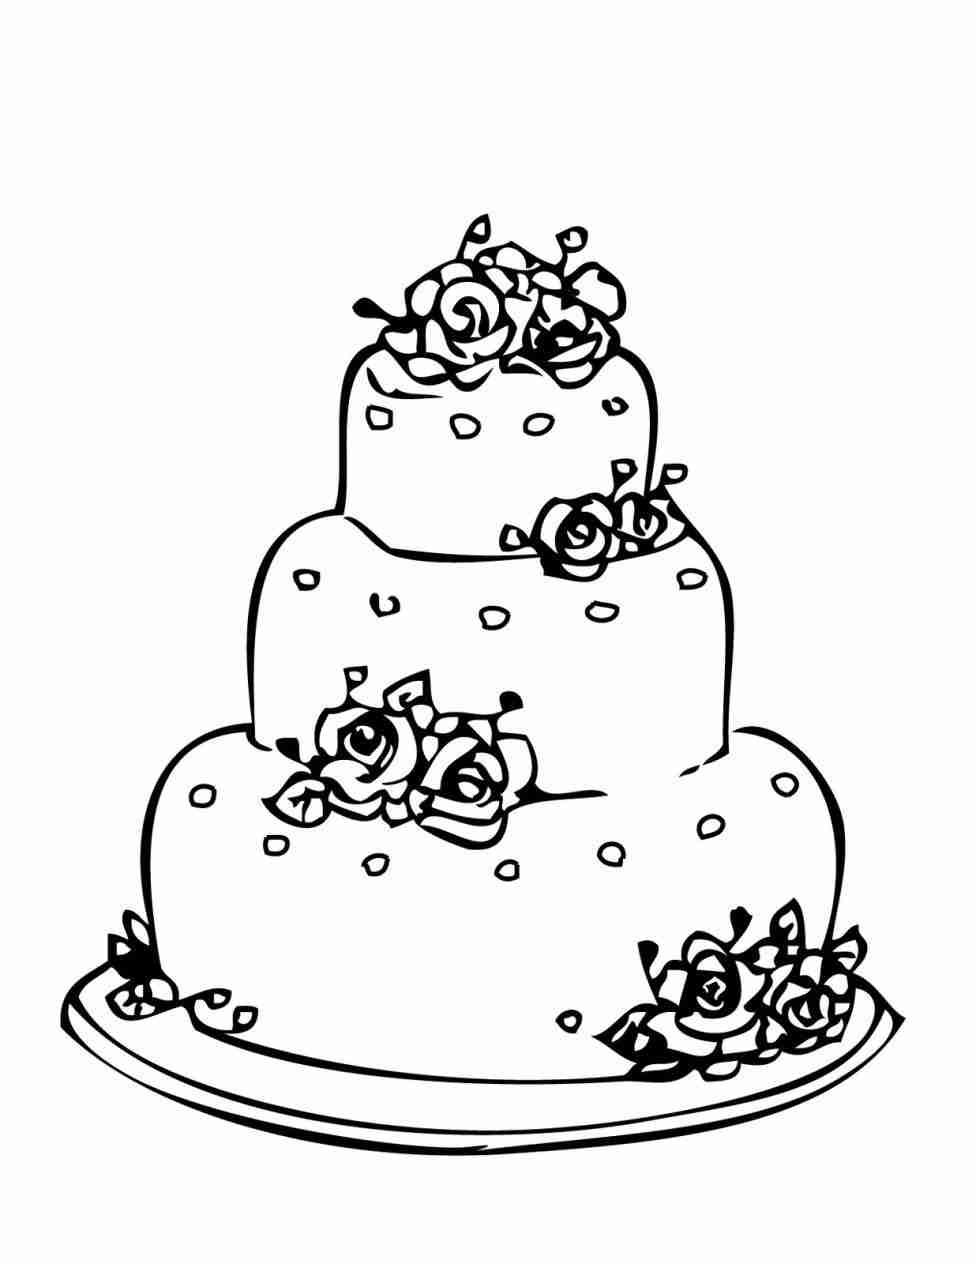 Wedding cake clipart black and white 5 » Clipart Station.